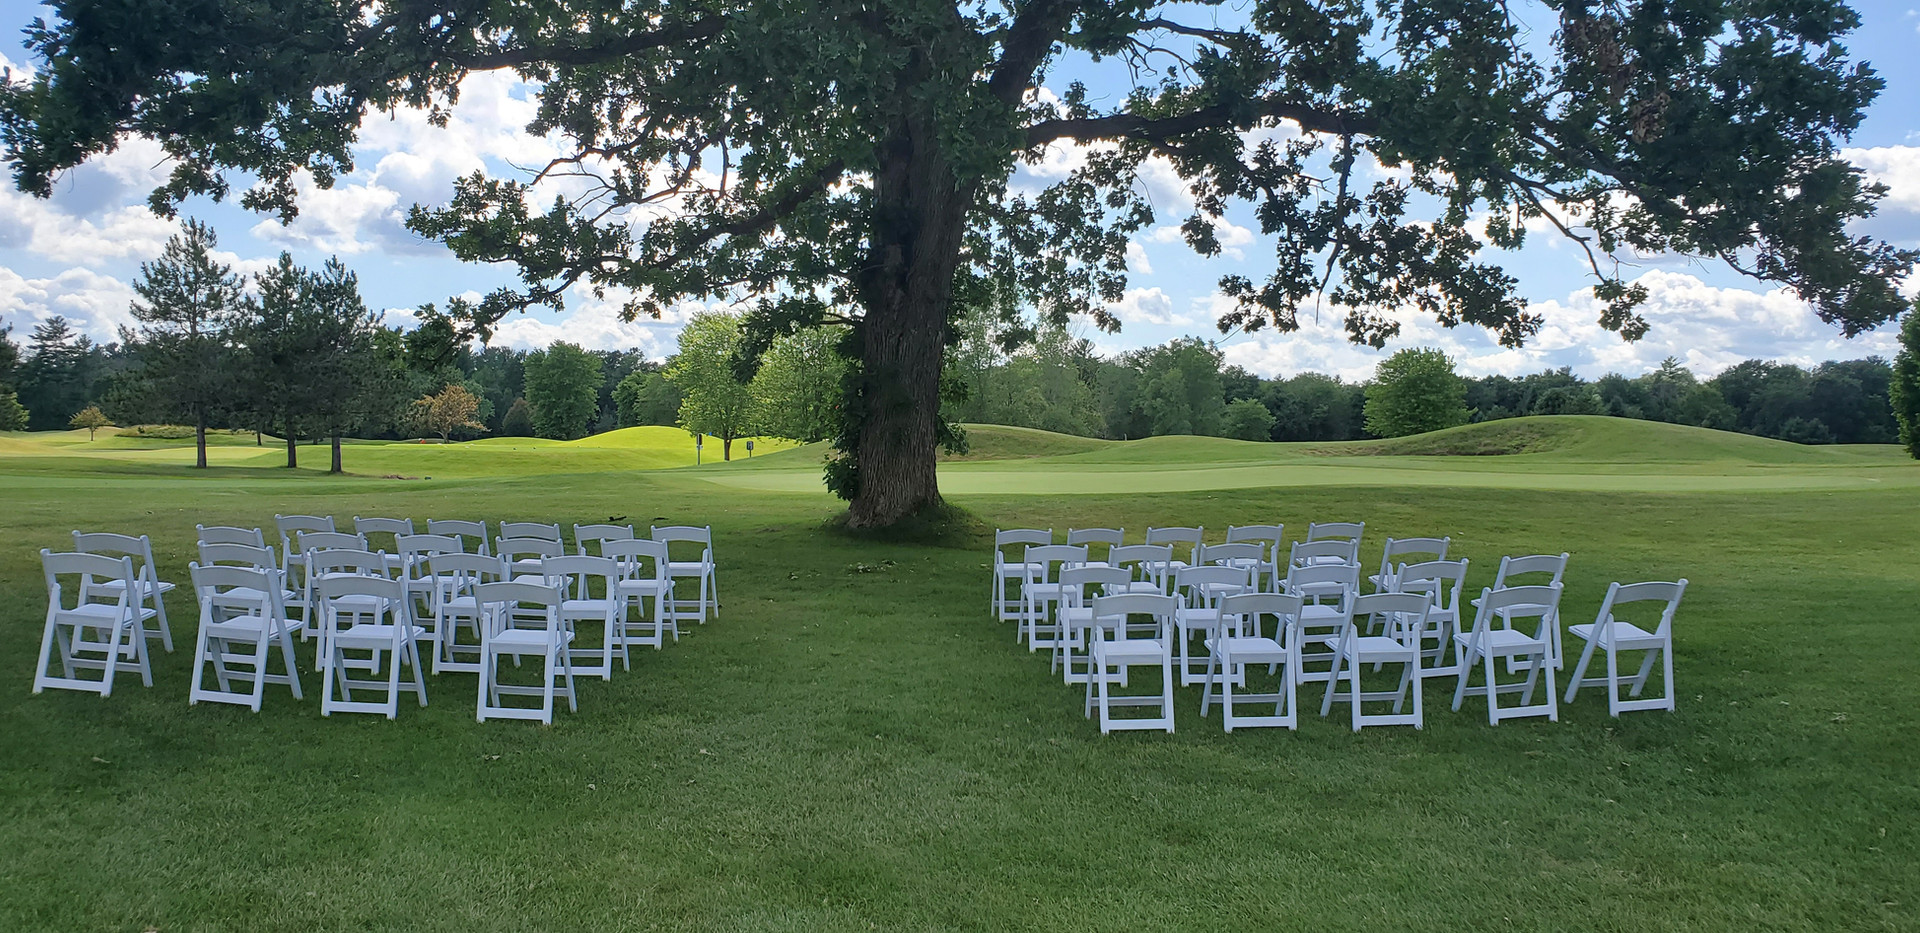 Golf Course Ceremony Site